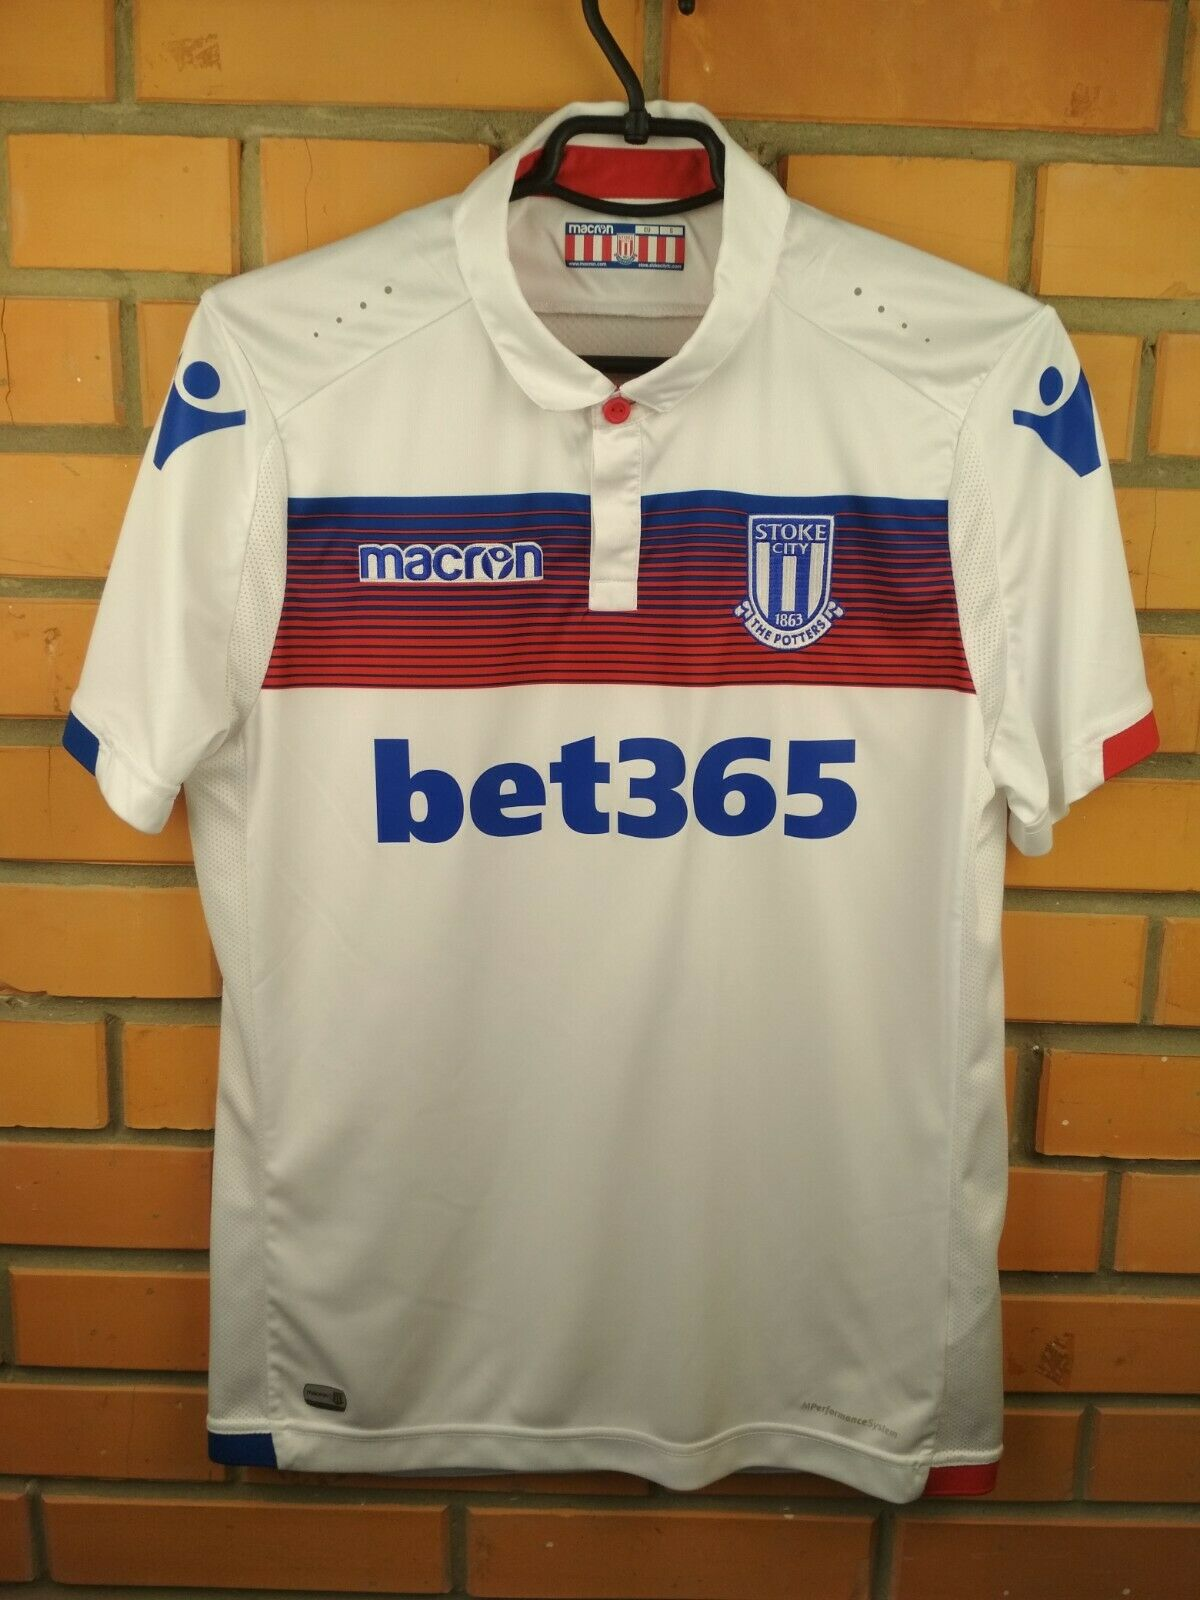 Stoke City player issue jersey S 2017 2018 third shirt soccer football Macron